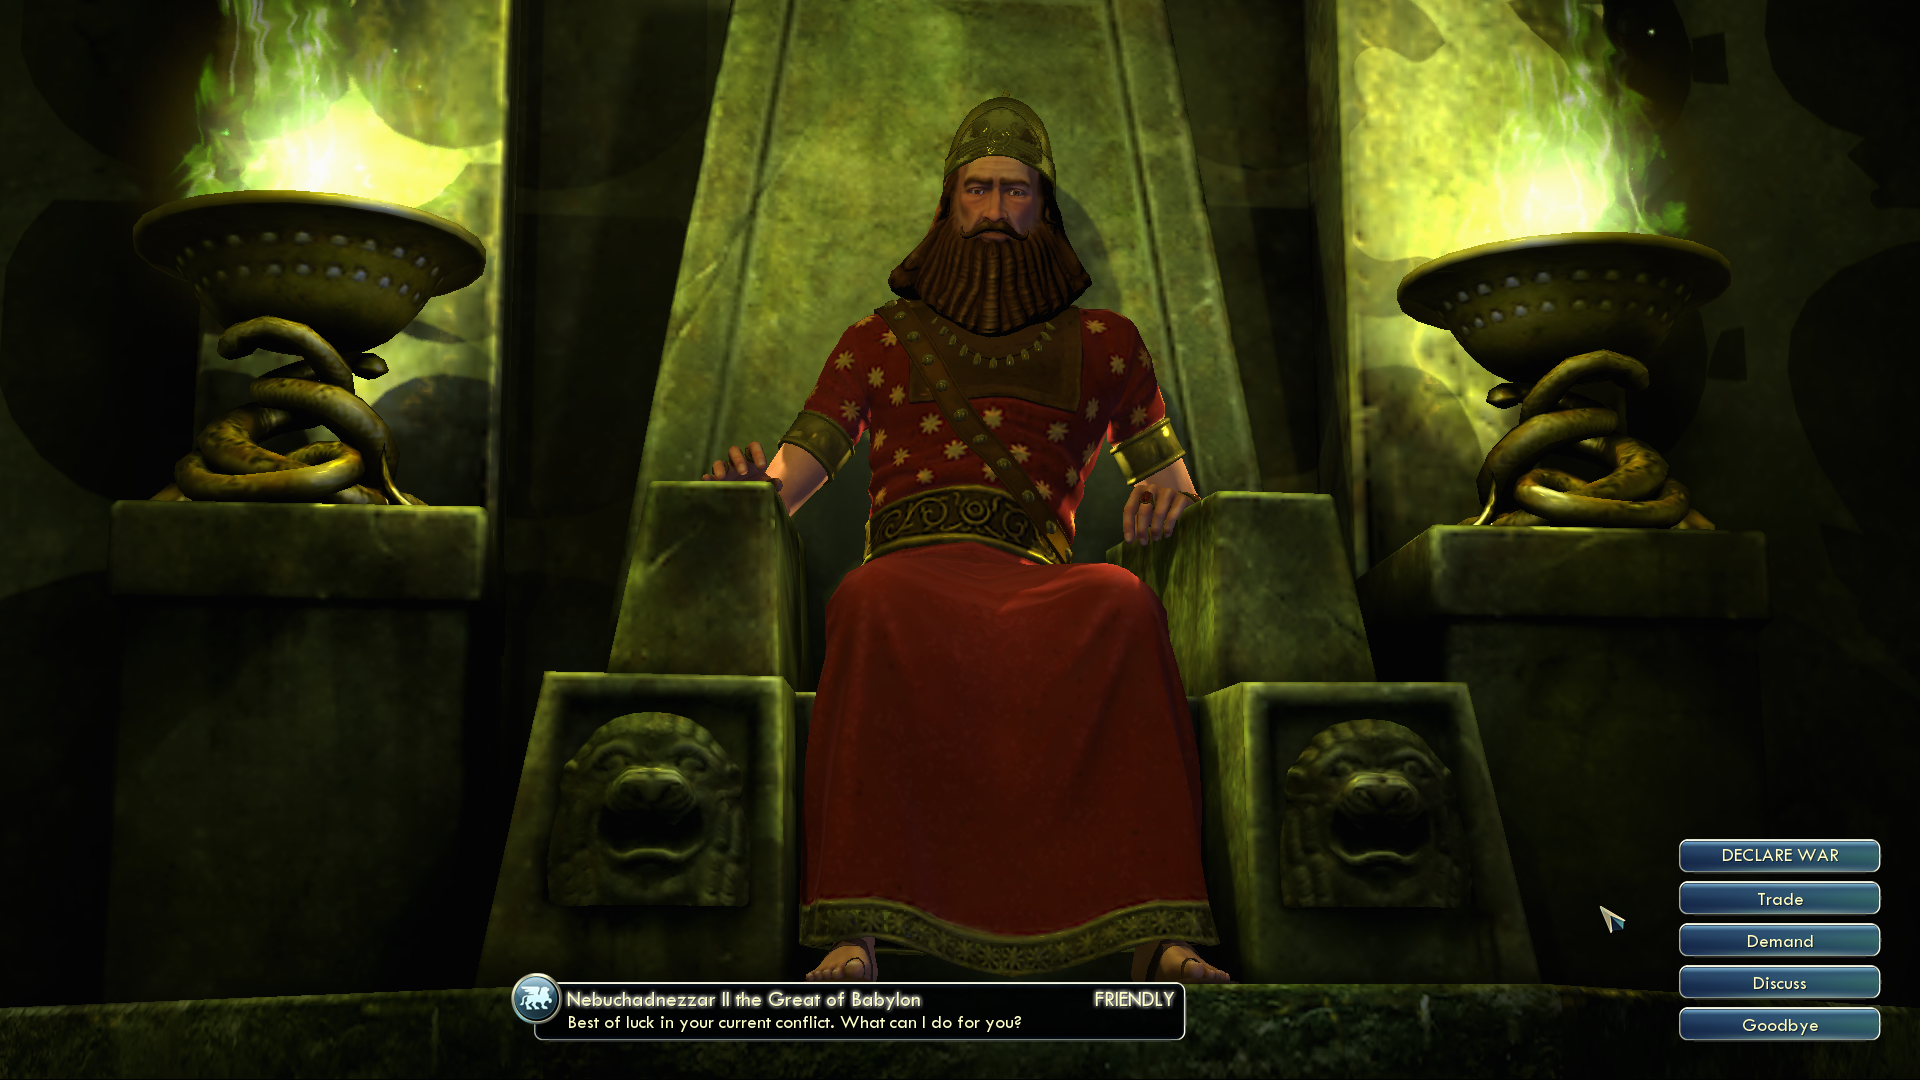 Sid Meier's Civilization V: Babylon (Nebuchadnezzar II) Windows Nebuchadnezzar II, King of the Neo-Babylonian Empire